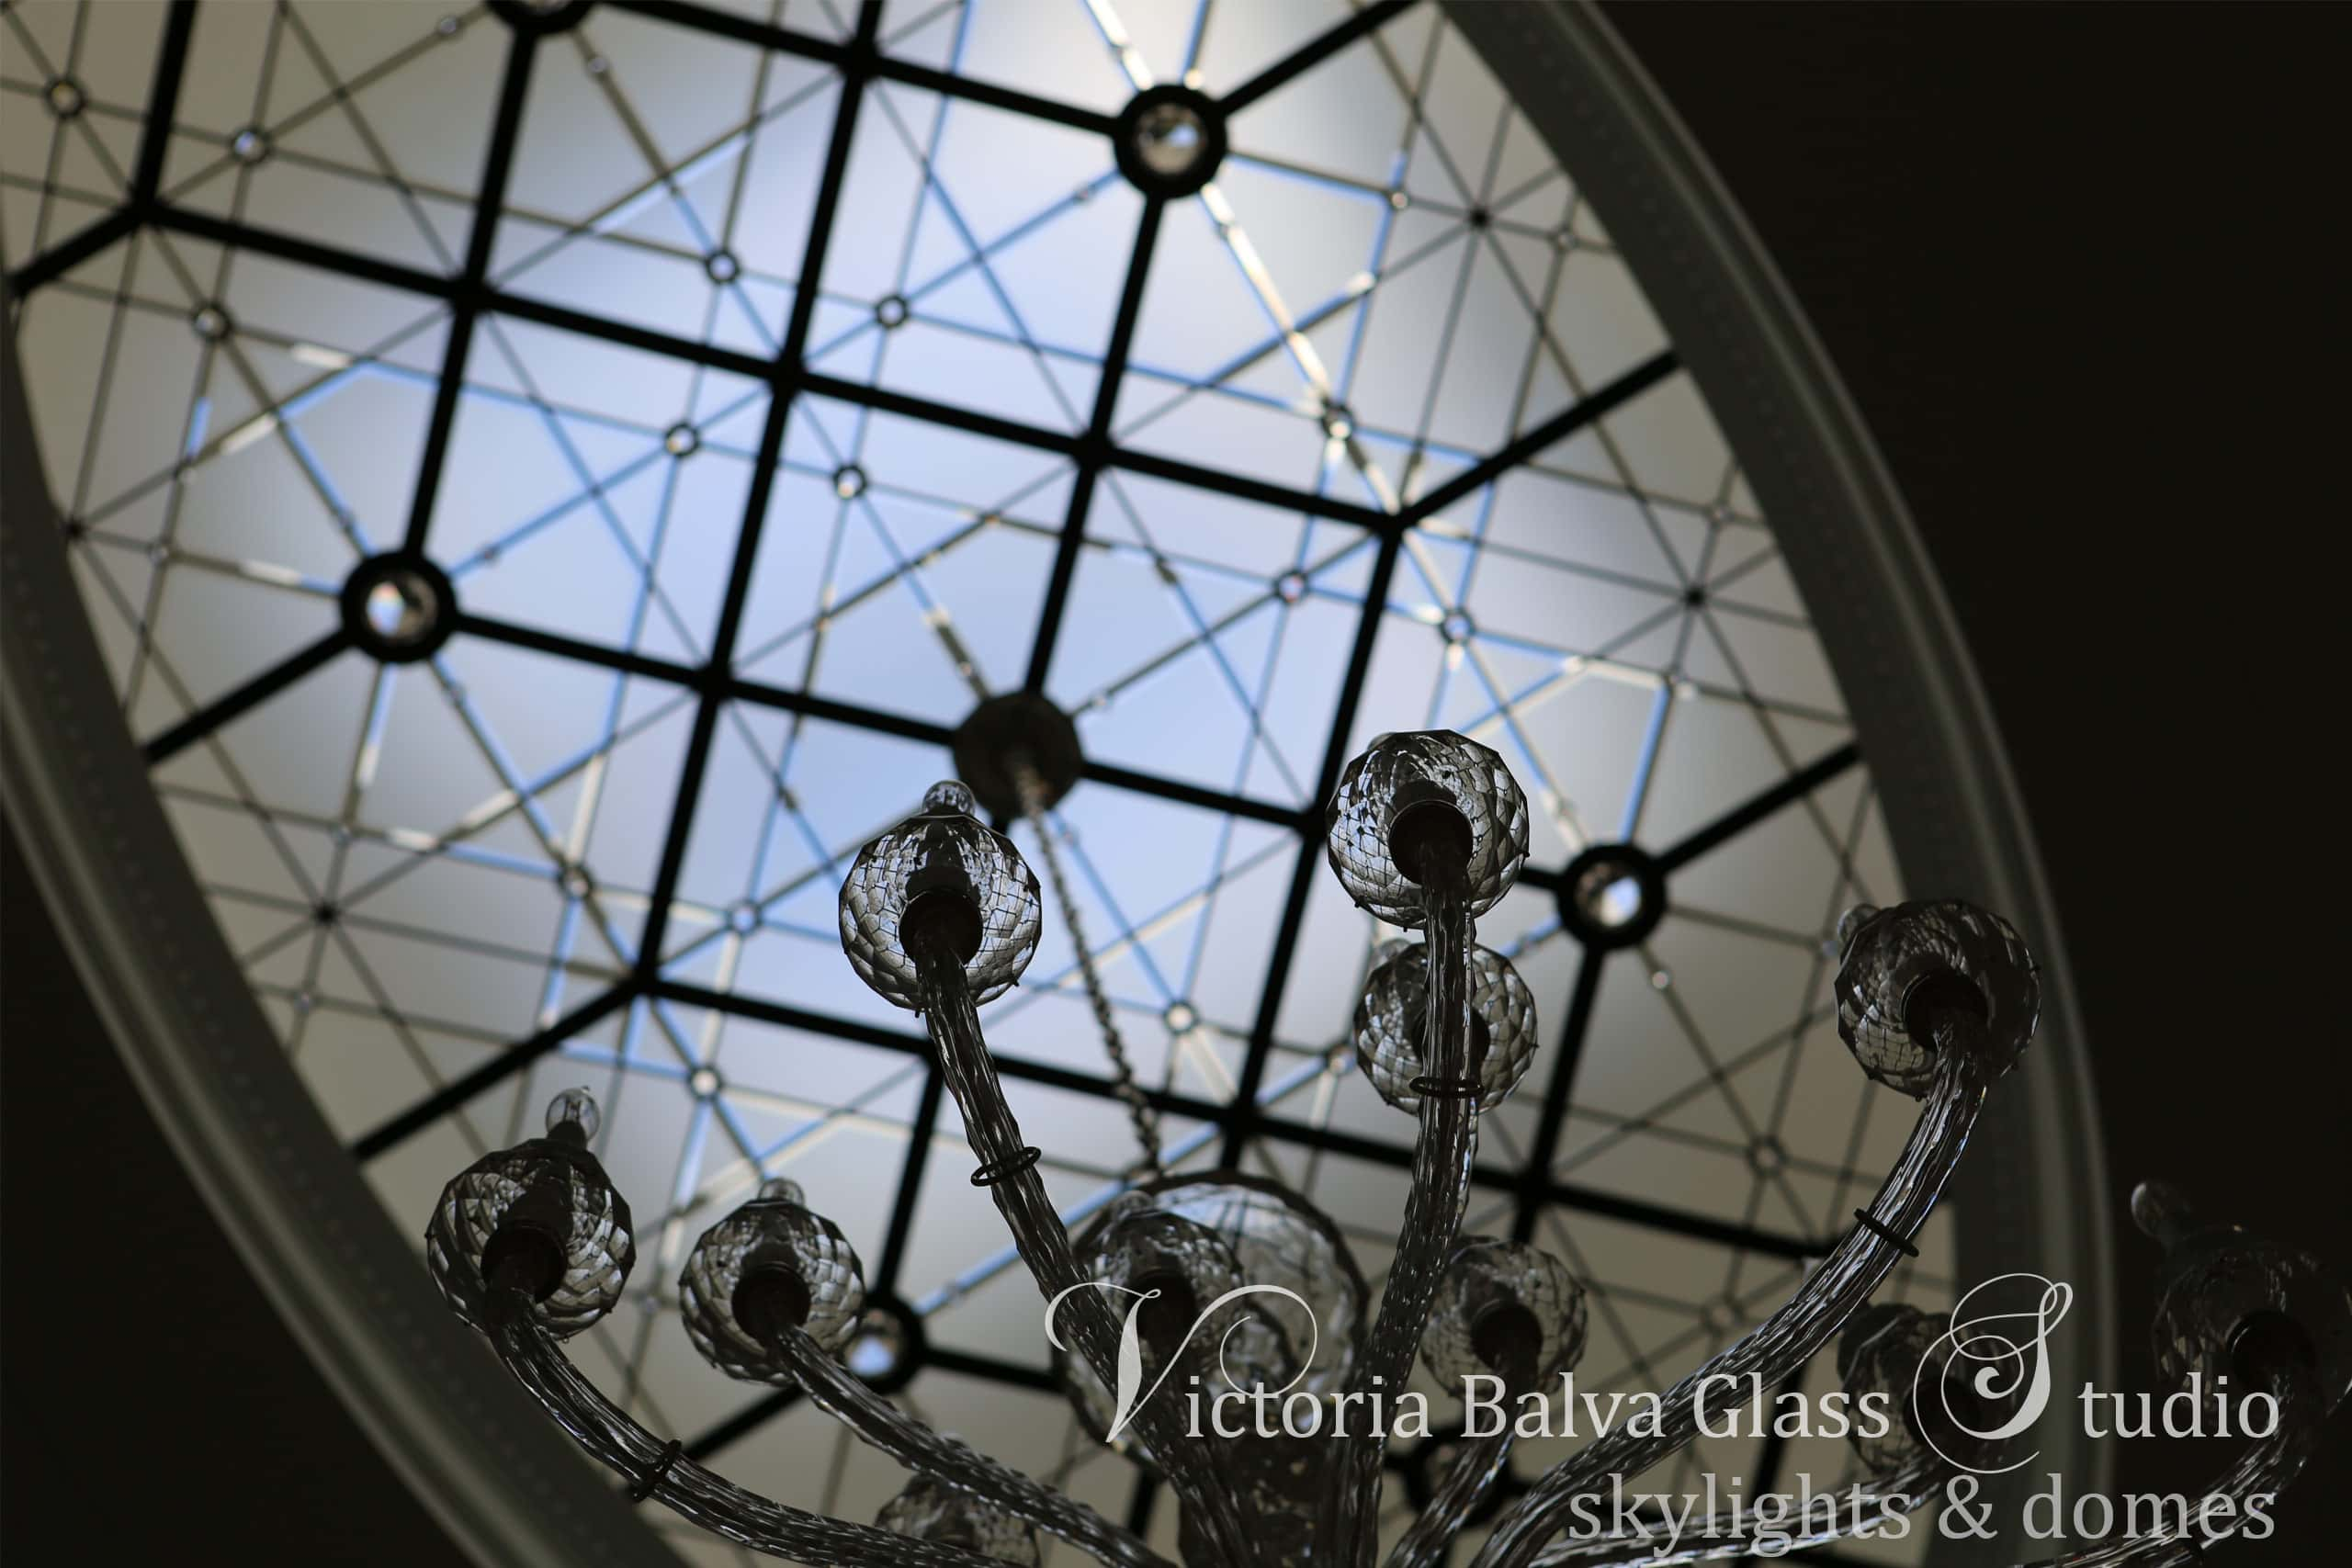 Daniela-raulph-lauren-ceiling-fixture-in-crystal-stained-glass-oval-skylight-ceiling